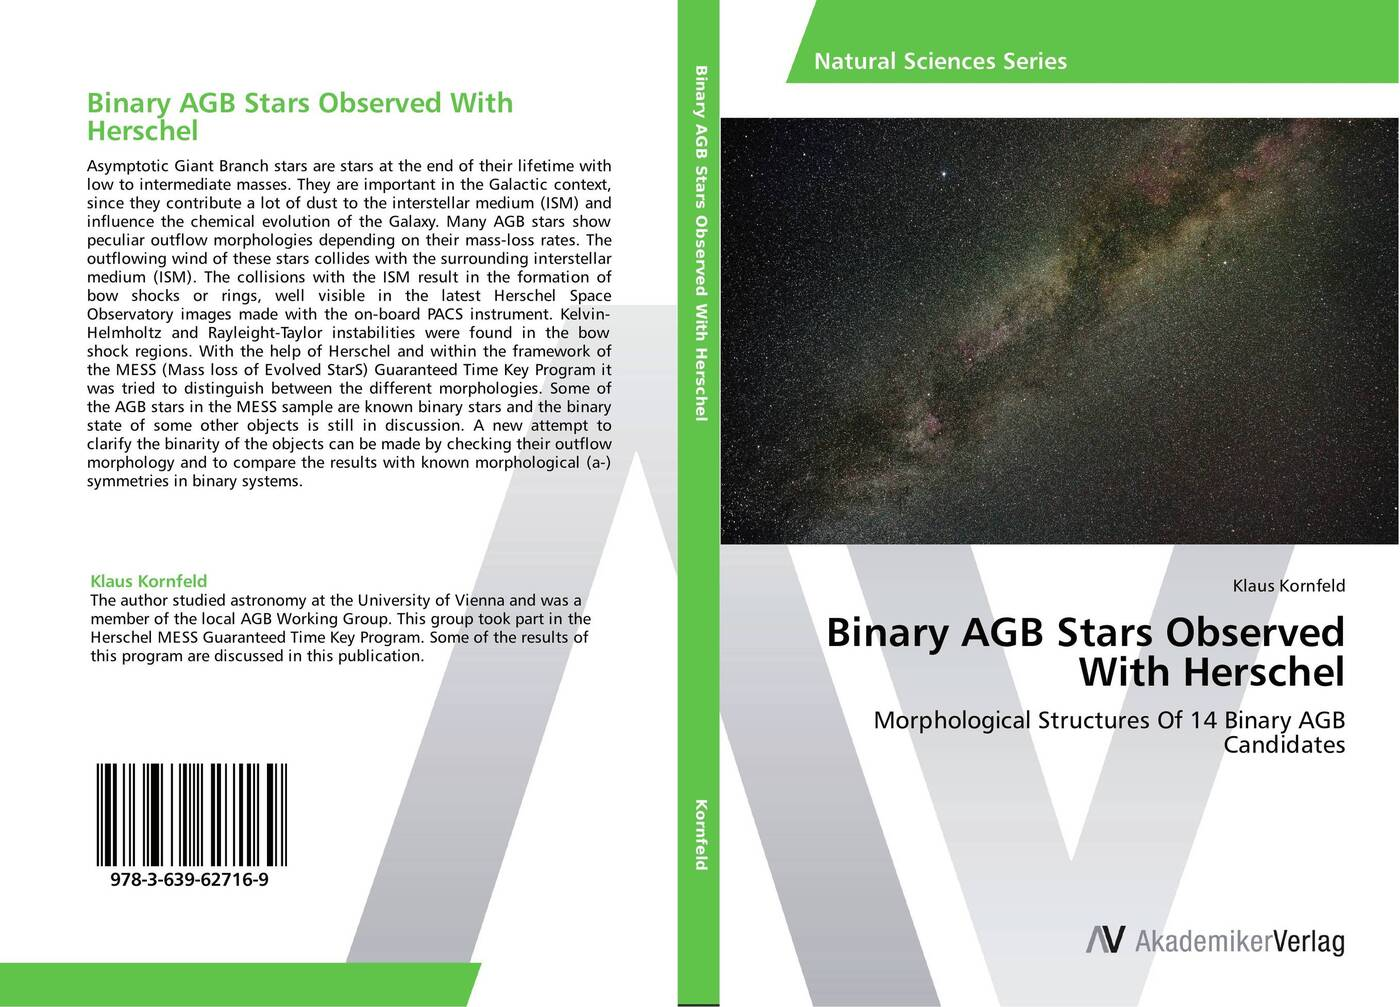 Klaus Kornfeld Binary AGB Stars Observed With Herschel binary star